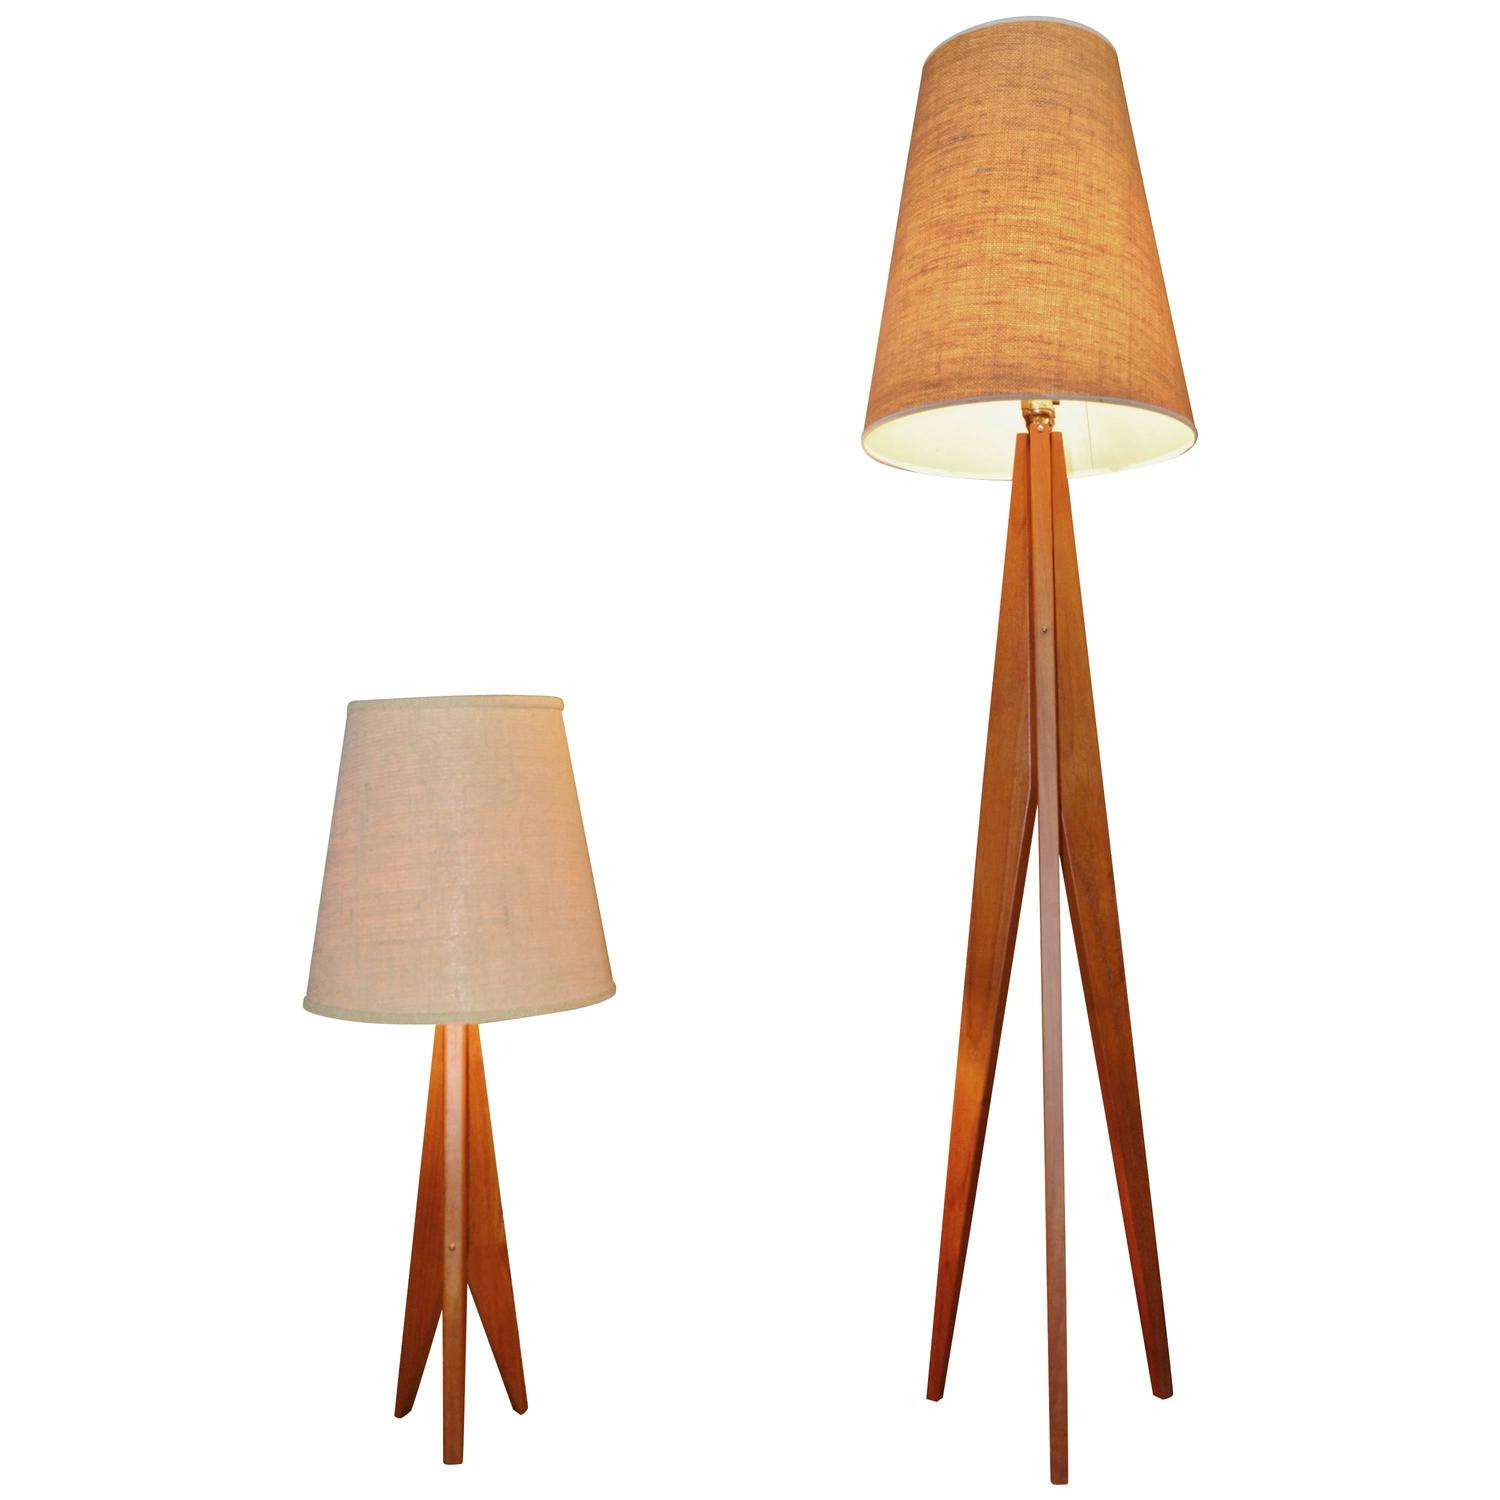 Teak tripod floor and table lamps danish modern at 1stdibs for Tripod spotlight floor lamp in teak wood